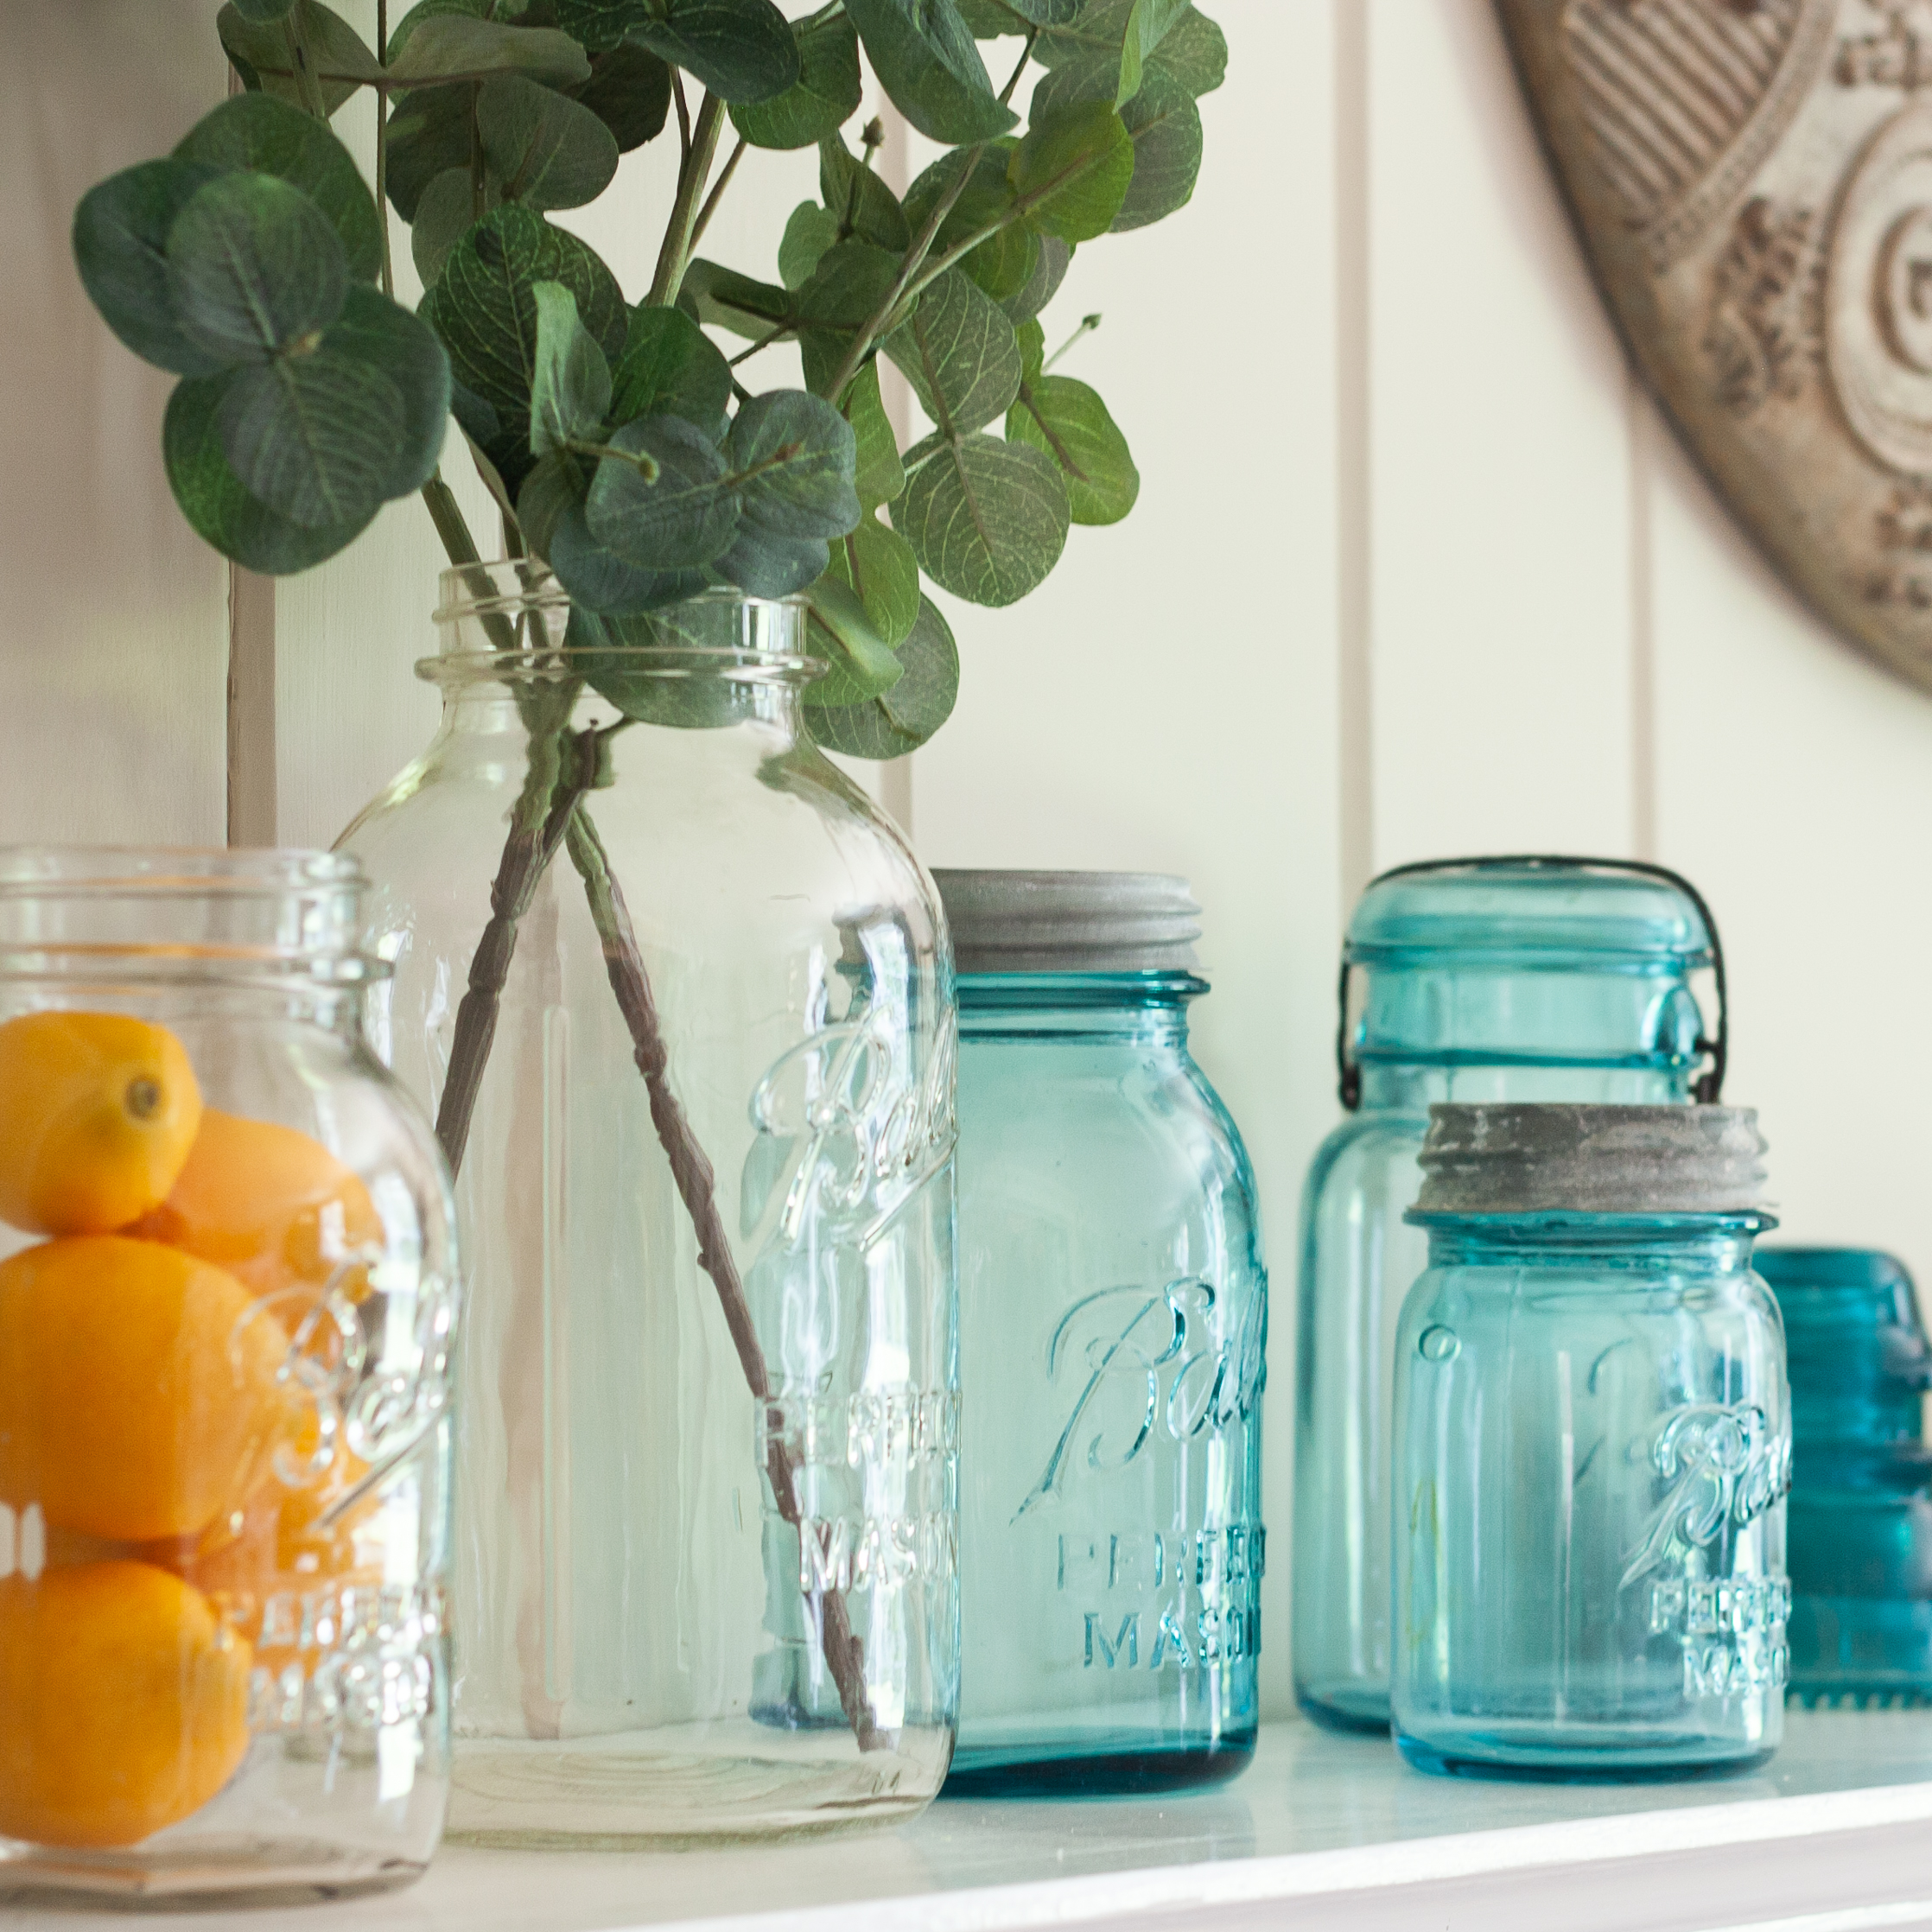 Decorate a summer mantel with vintage mason jars and lemons.